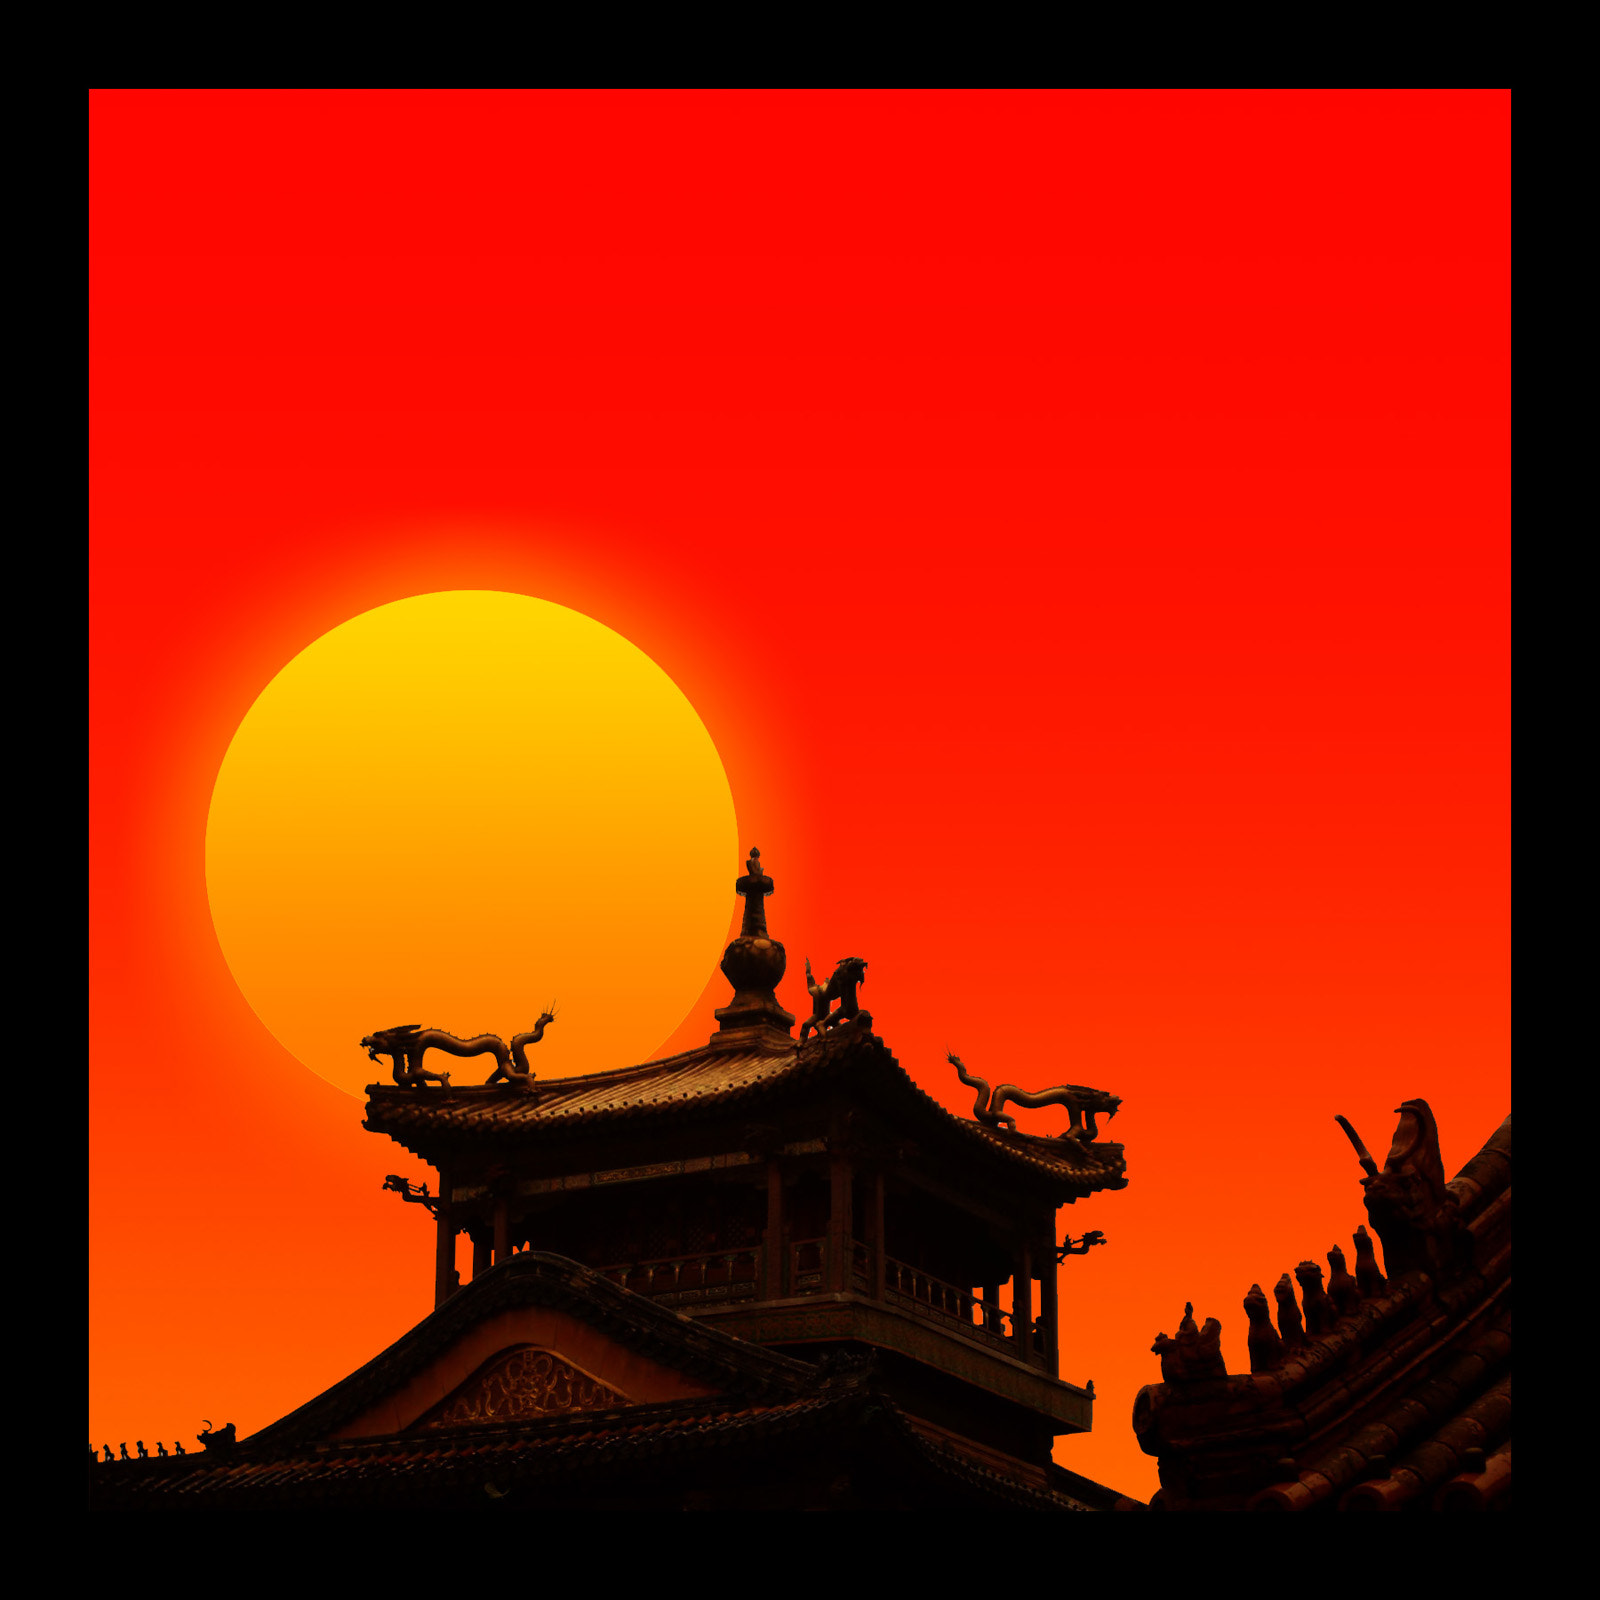 Photograph SUNSET AT CHINA by Maroof Rana on 500px